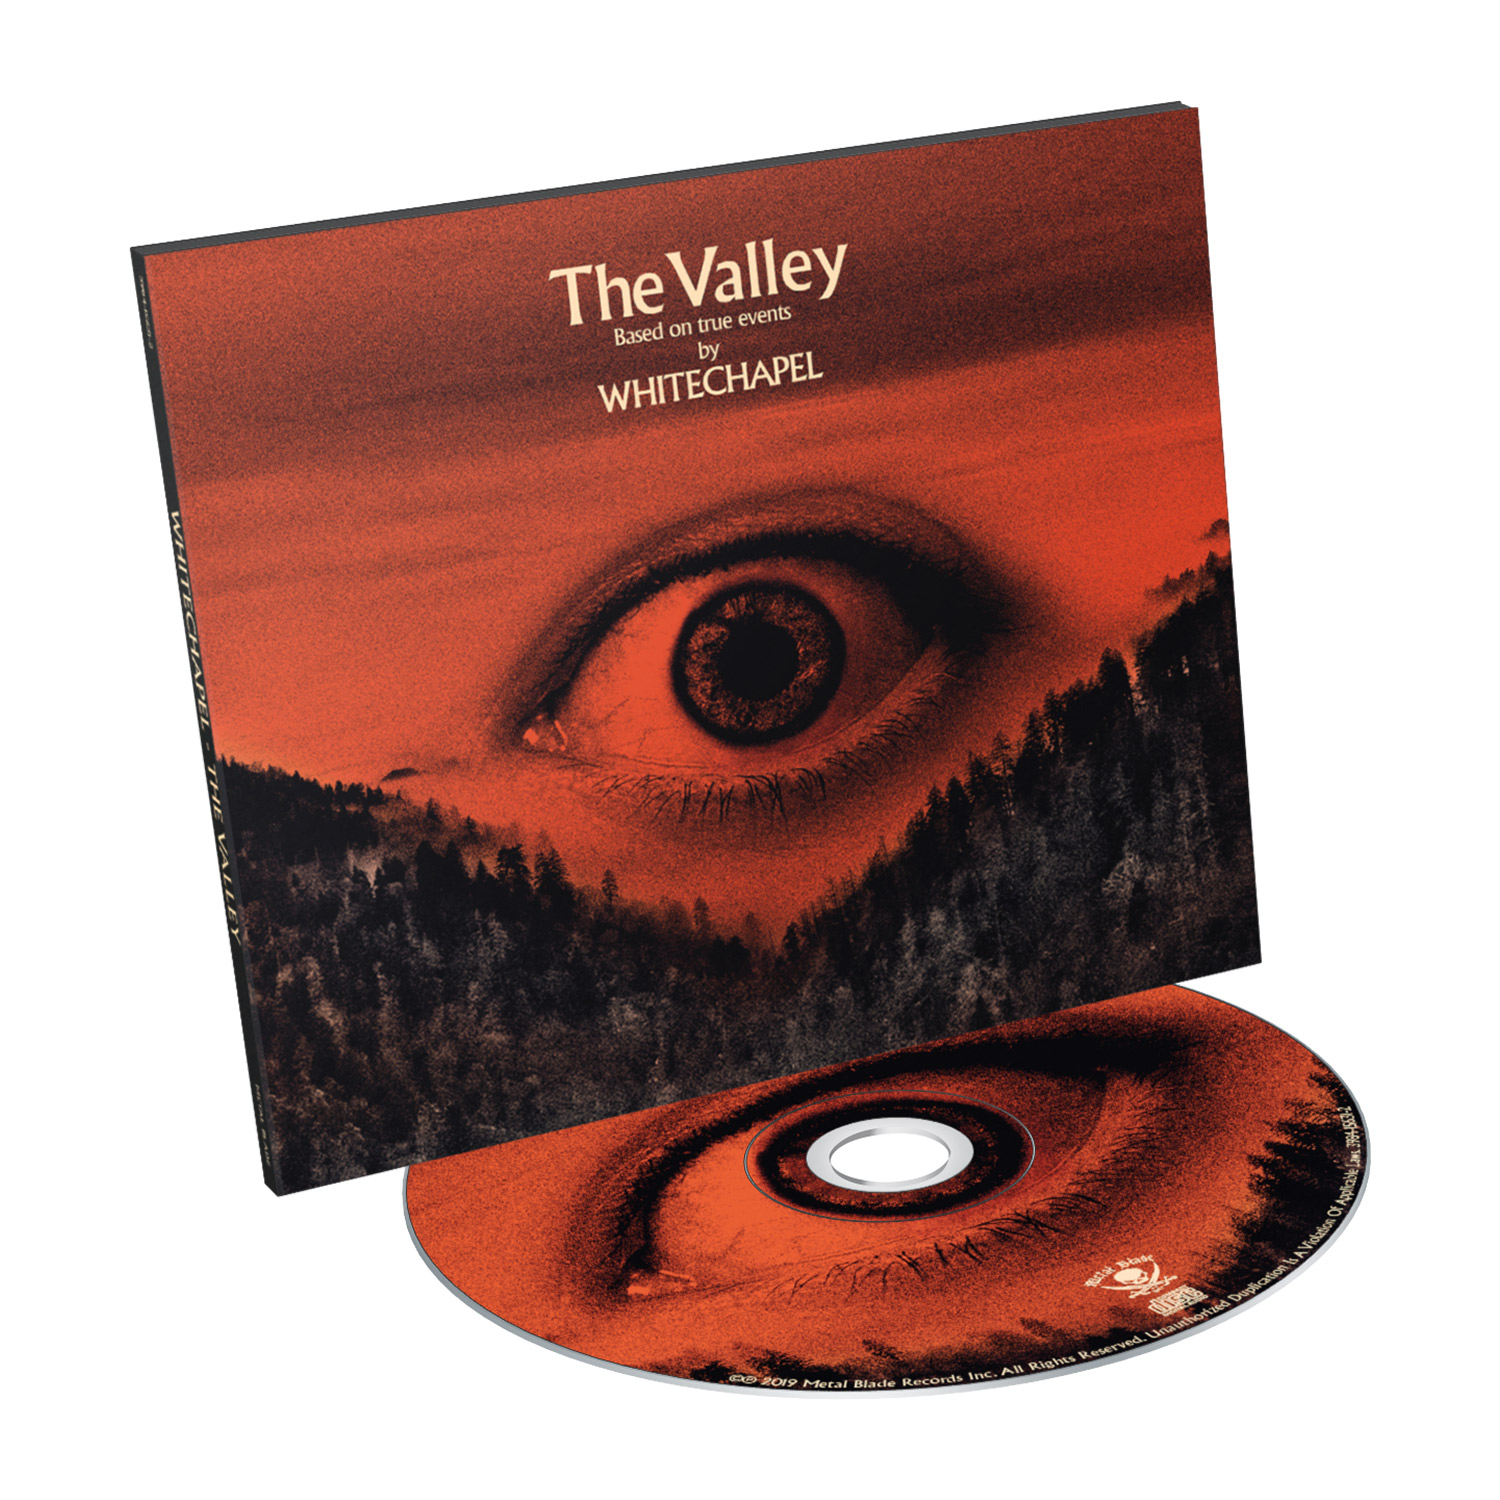 The Valley - Deluxe CD Haze Bundle - Brimstone